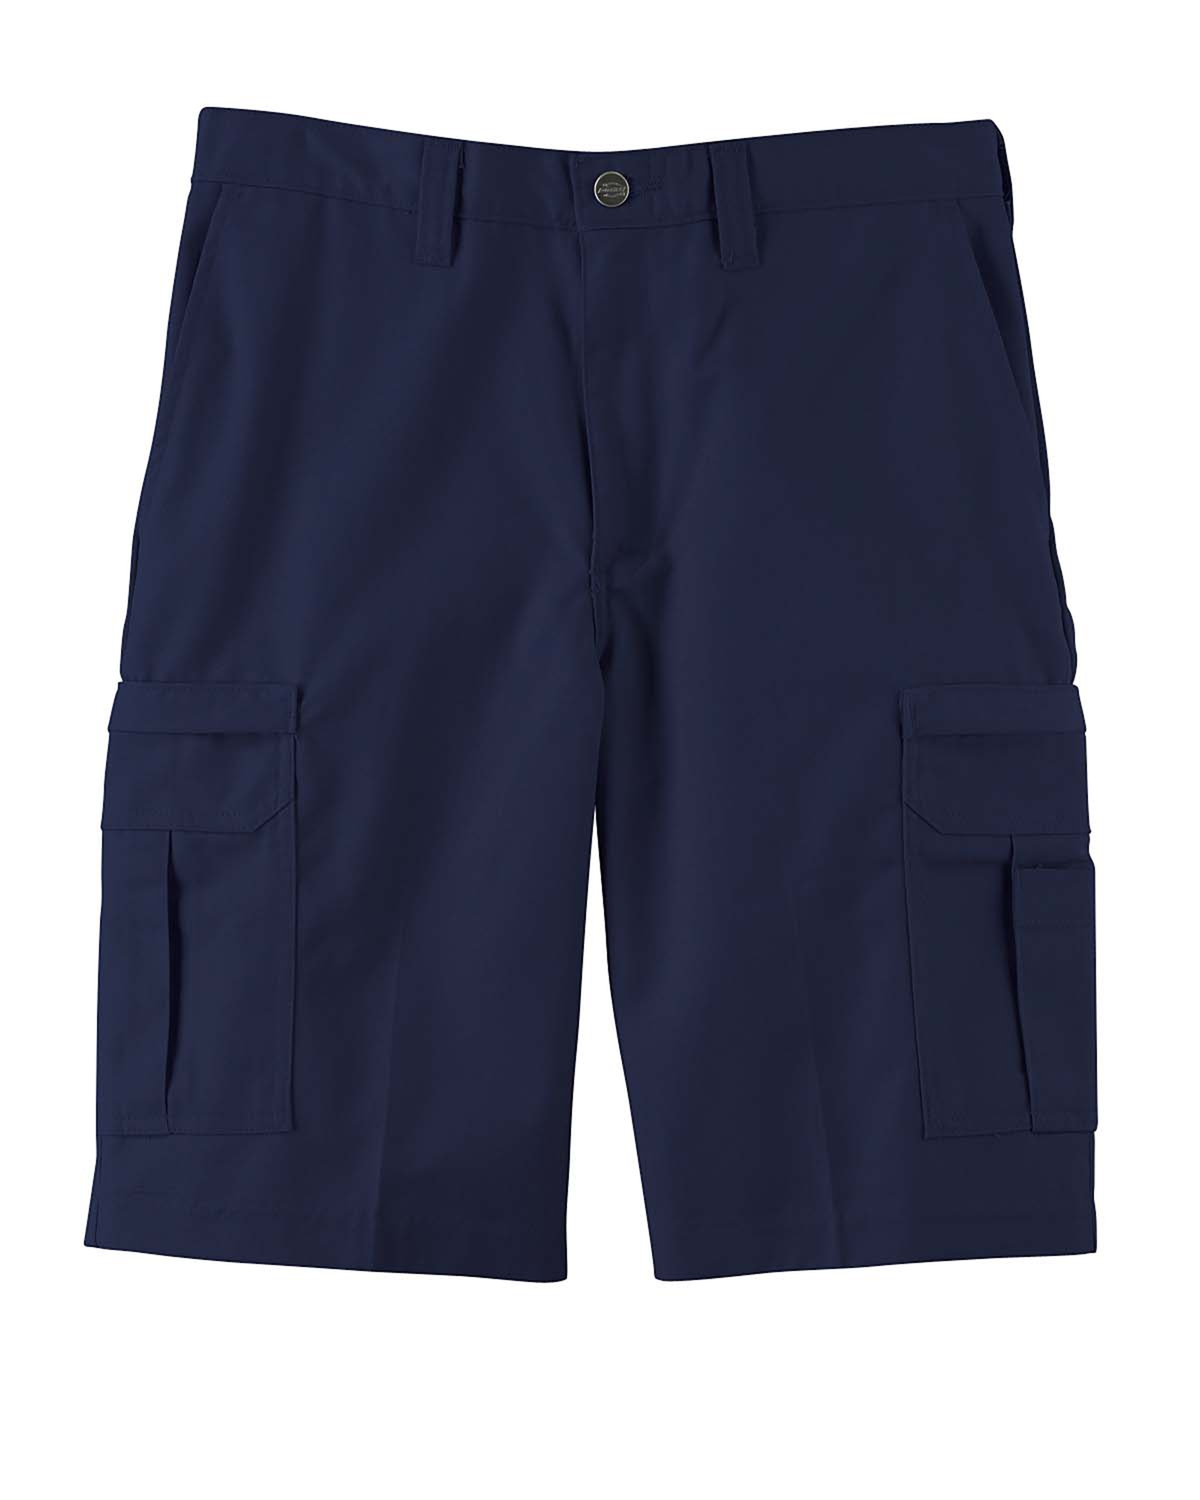 Dickies LR542 - 7.75 oz. Premium Industrial Cargo Short